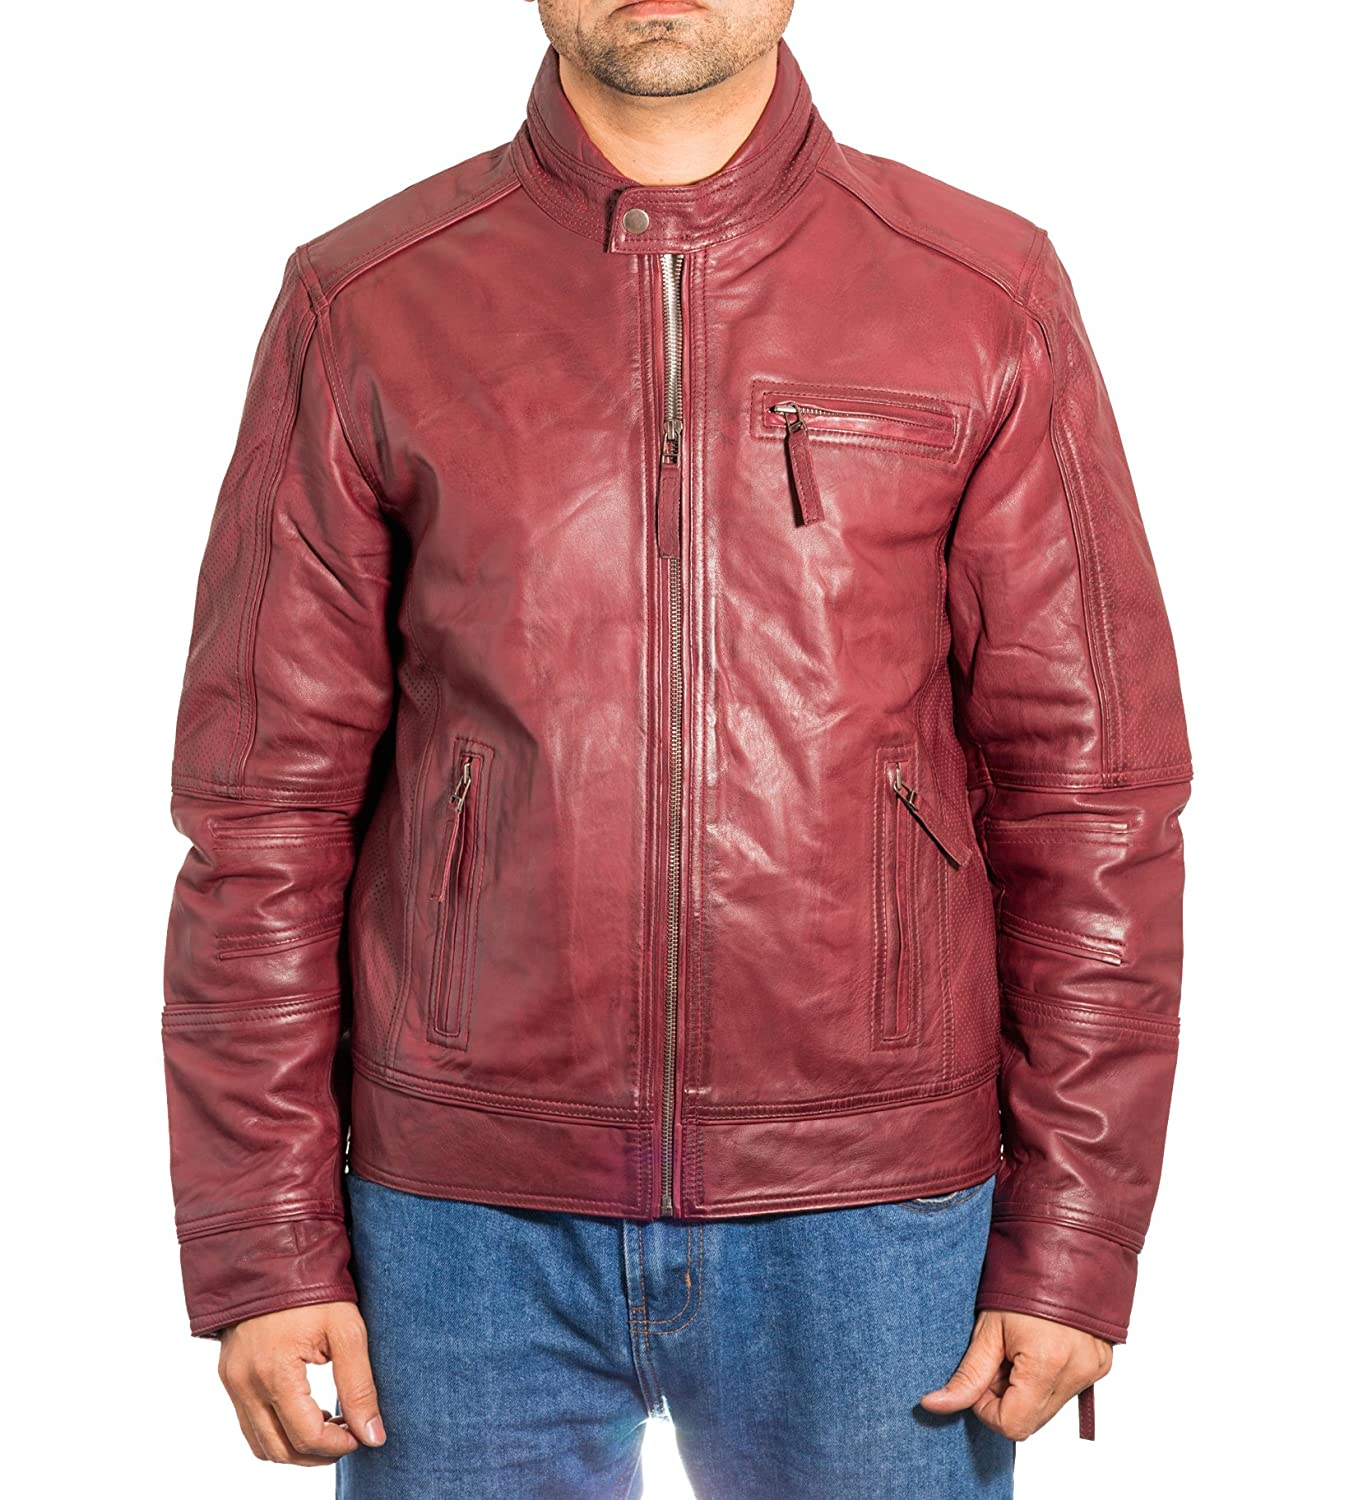 Mens Burgundy Leather Collarless Summer Zipped Biker Jacket With Perforated Detailing